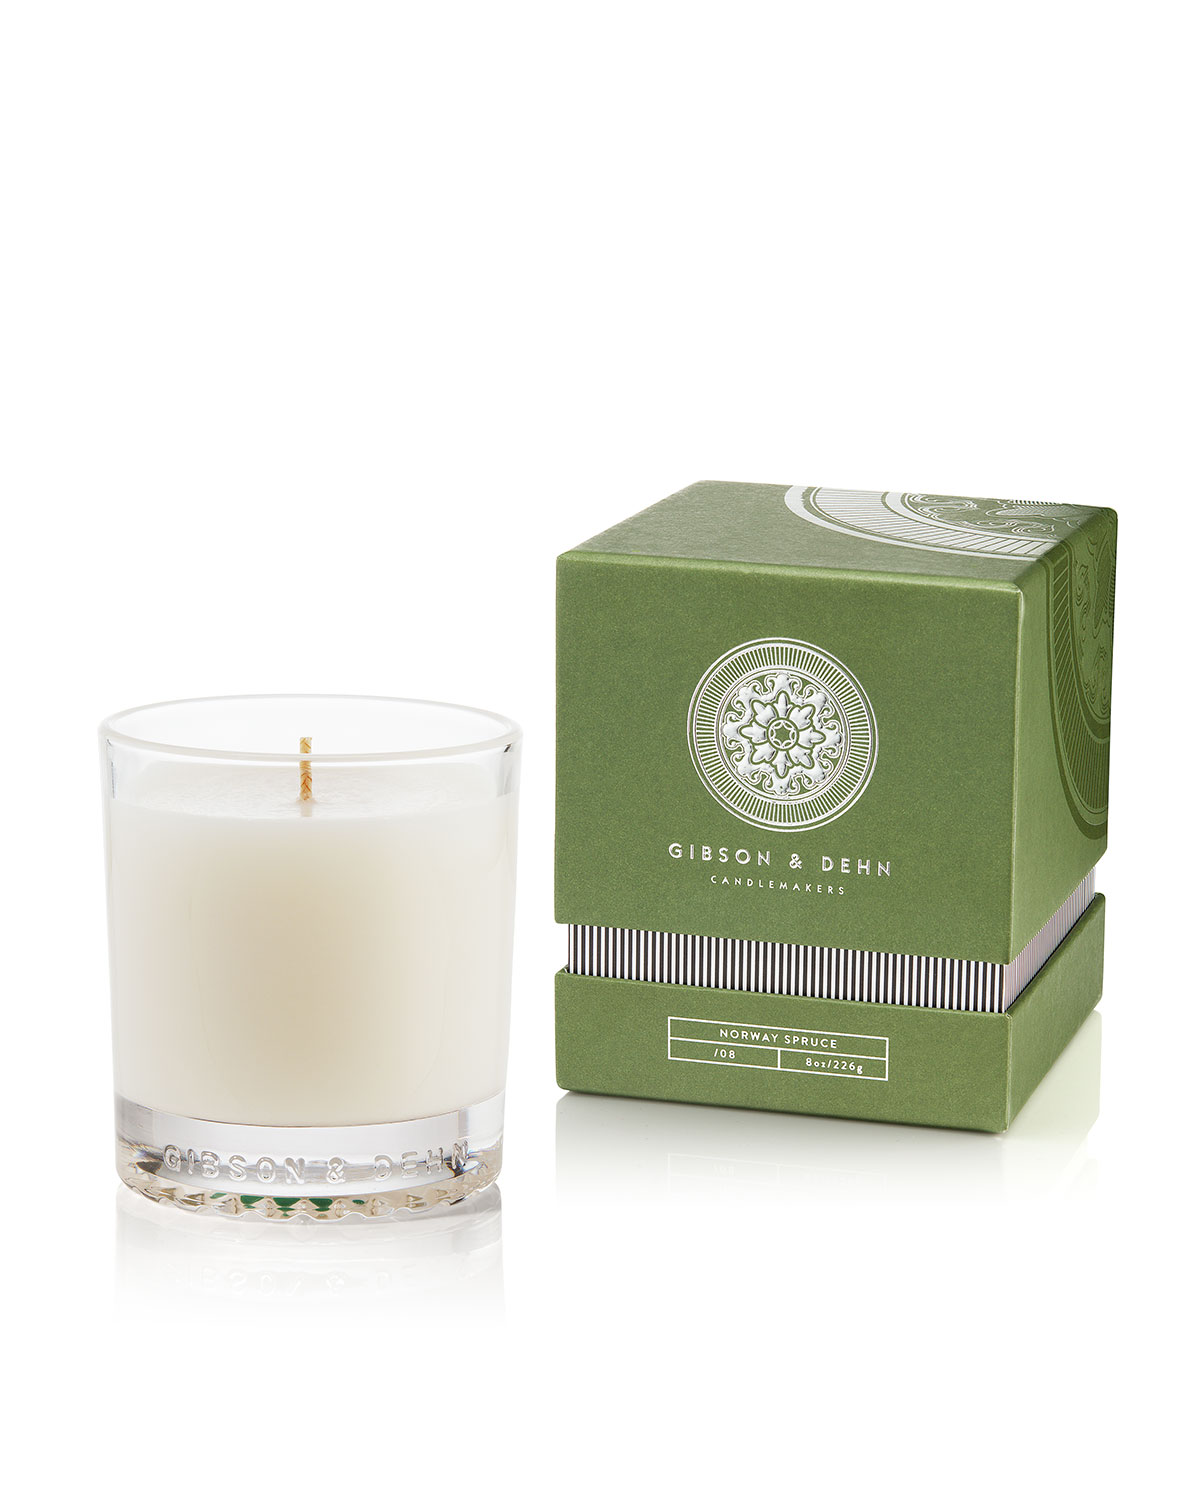 Gibson & Dehn Norway Spruce Single Wick Candle, 8 oz. / 227g